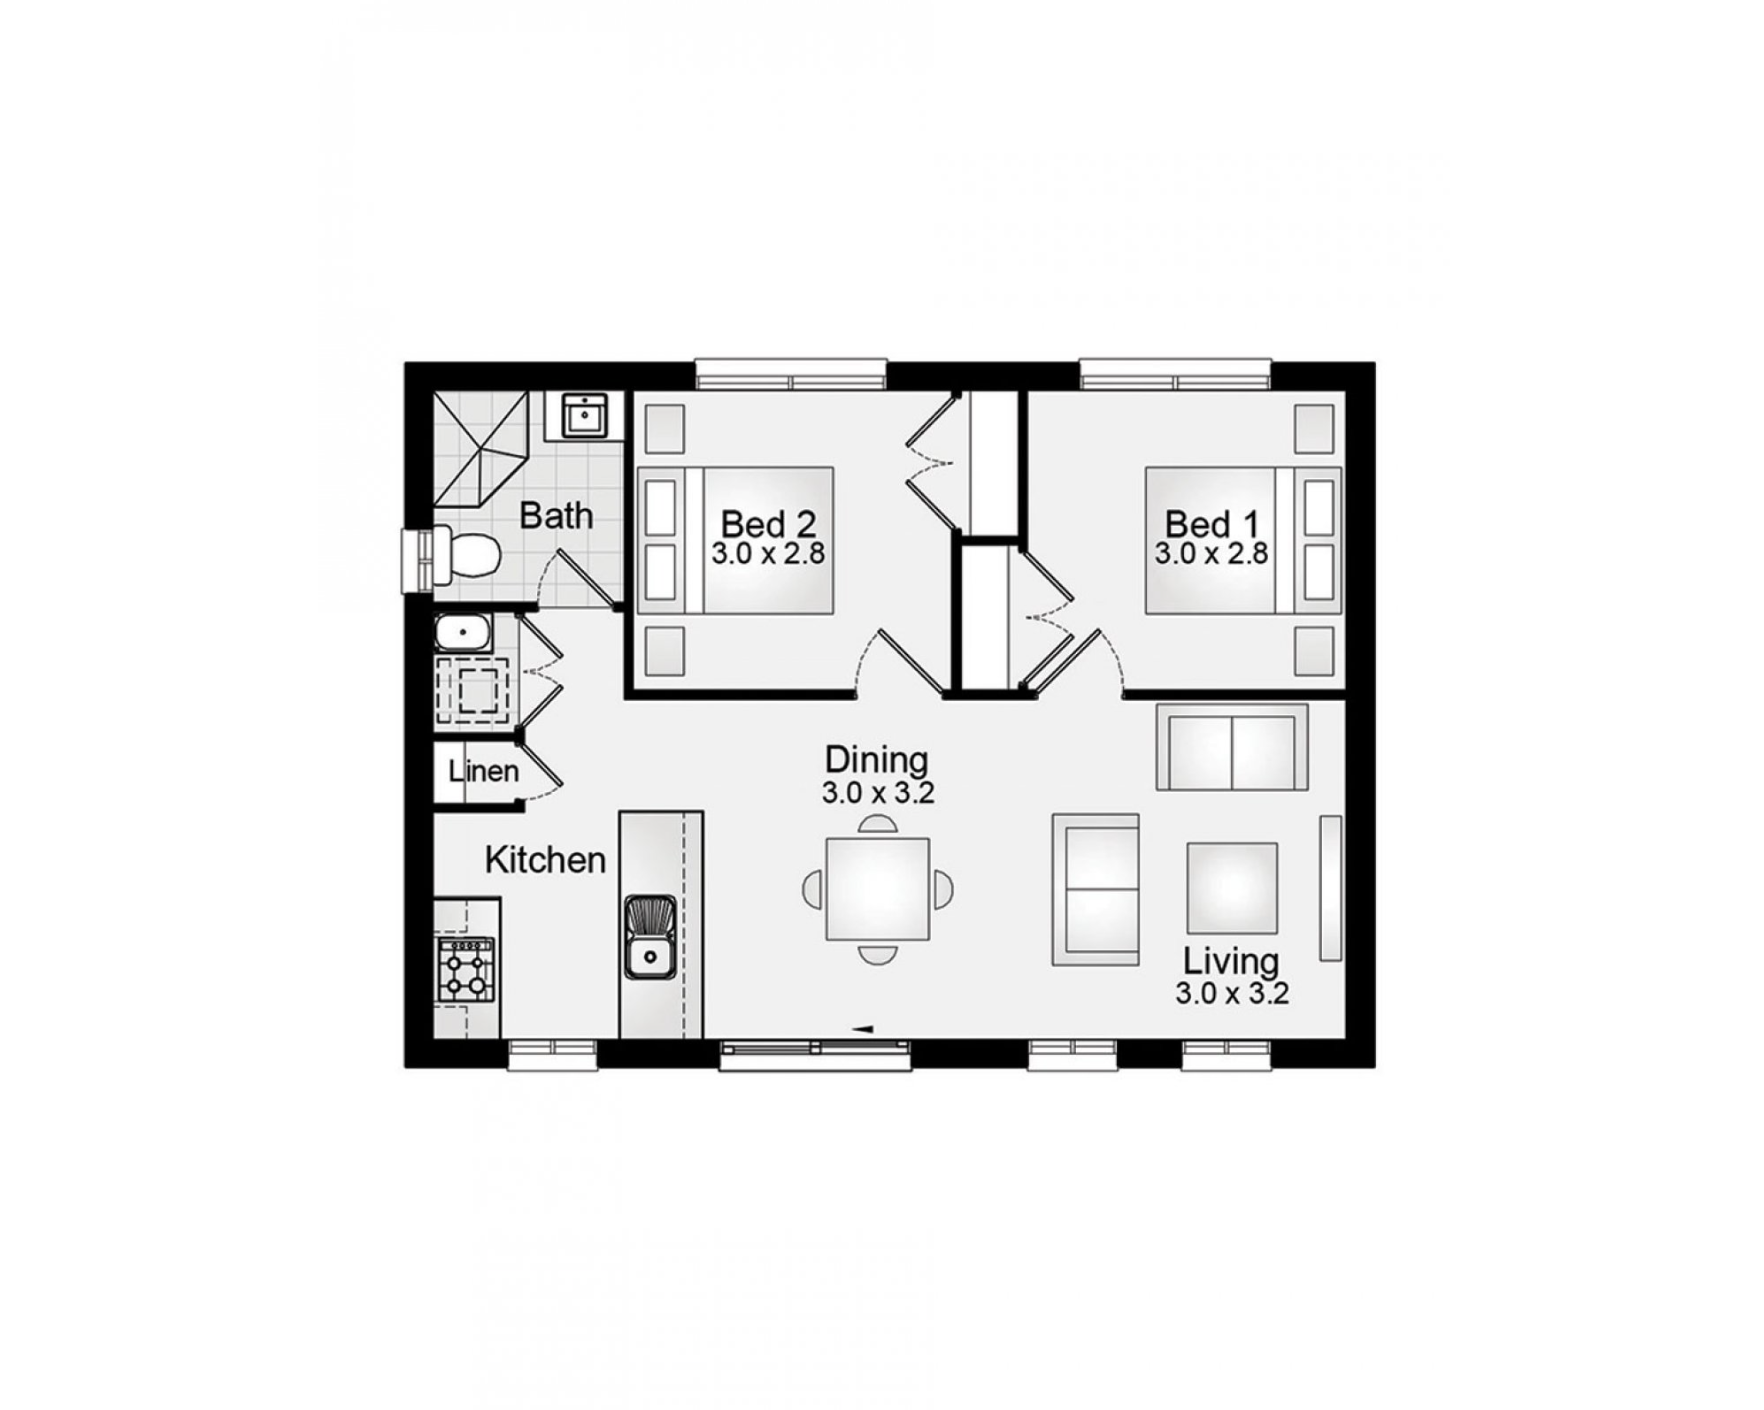 Granny Flat 60m2 2 Bedroom Clarendon Homes Floor Plans Floor Plans House Floor Plans How To Plan